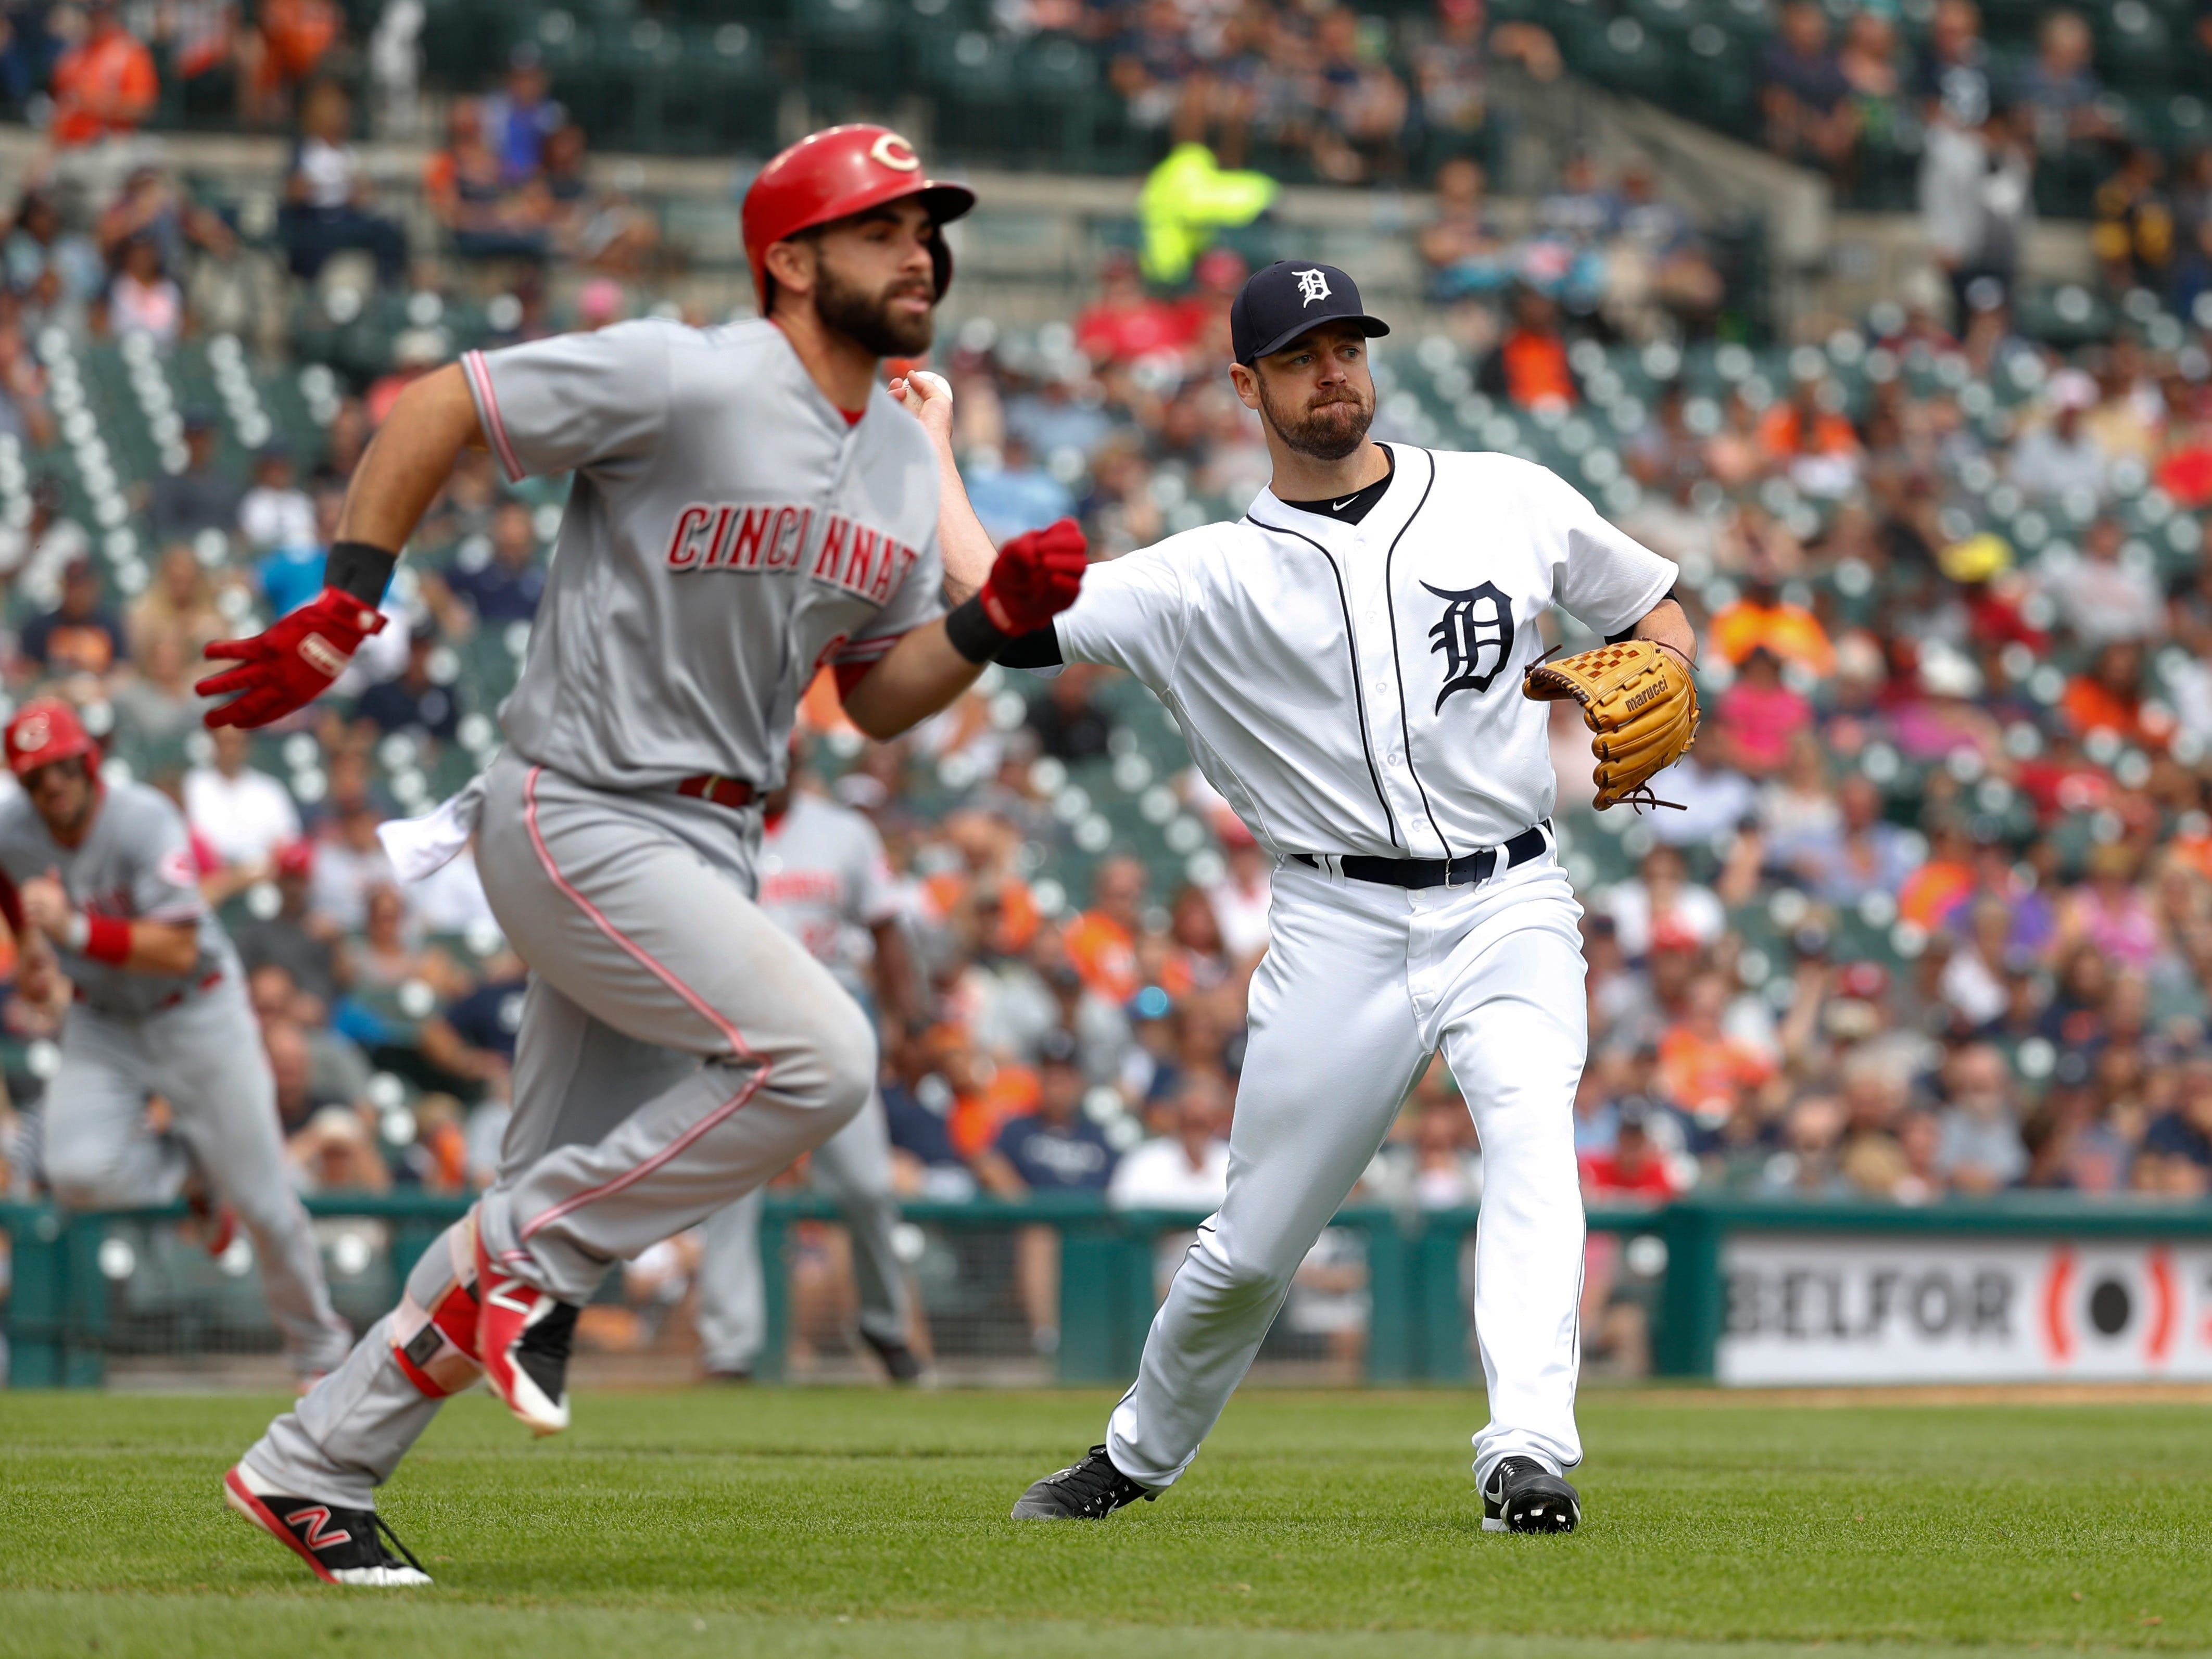 Tigers relief pitcher Louis Coleman throws out Cincinnati Reds' Jose Peraza  at first base in the seventh inning.